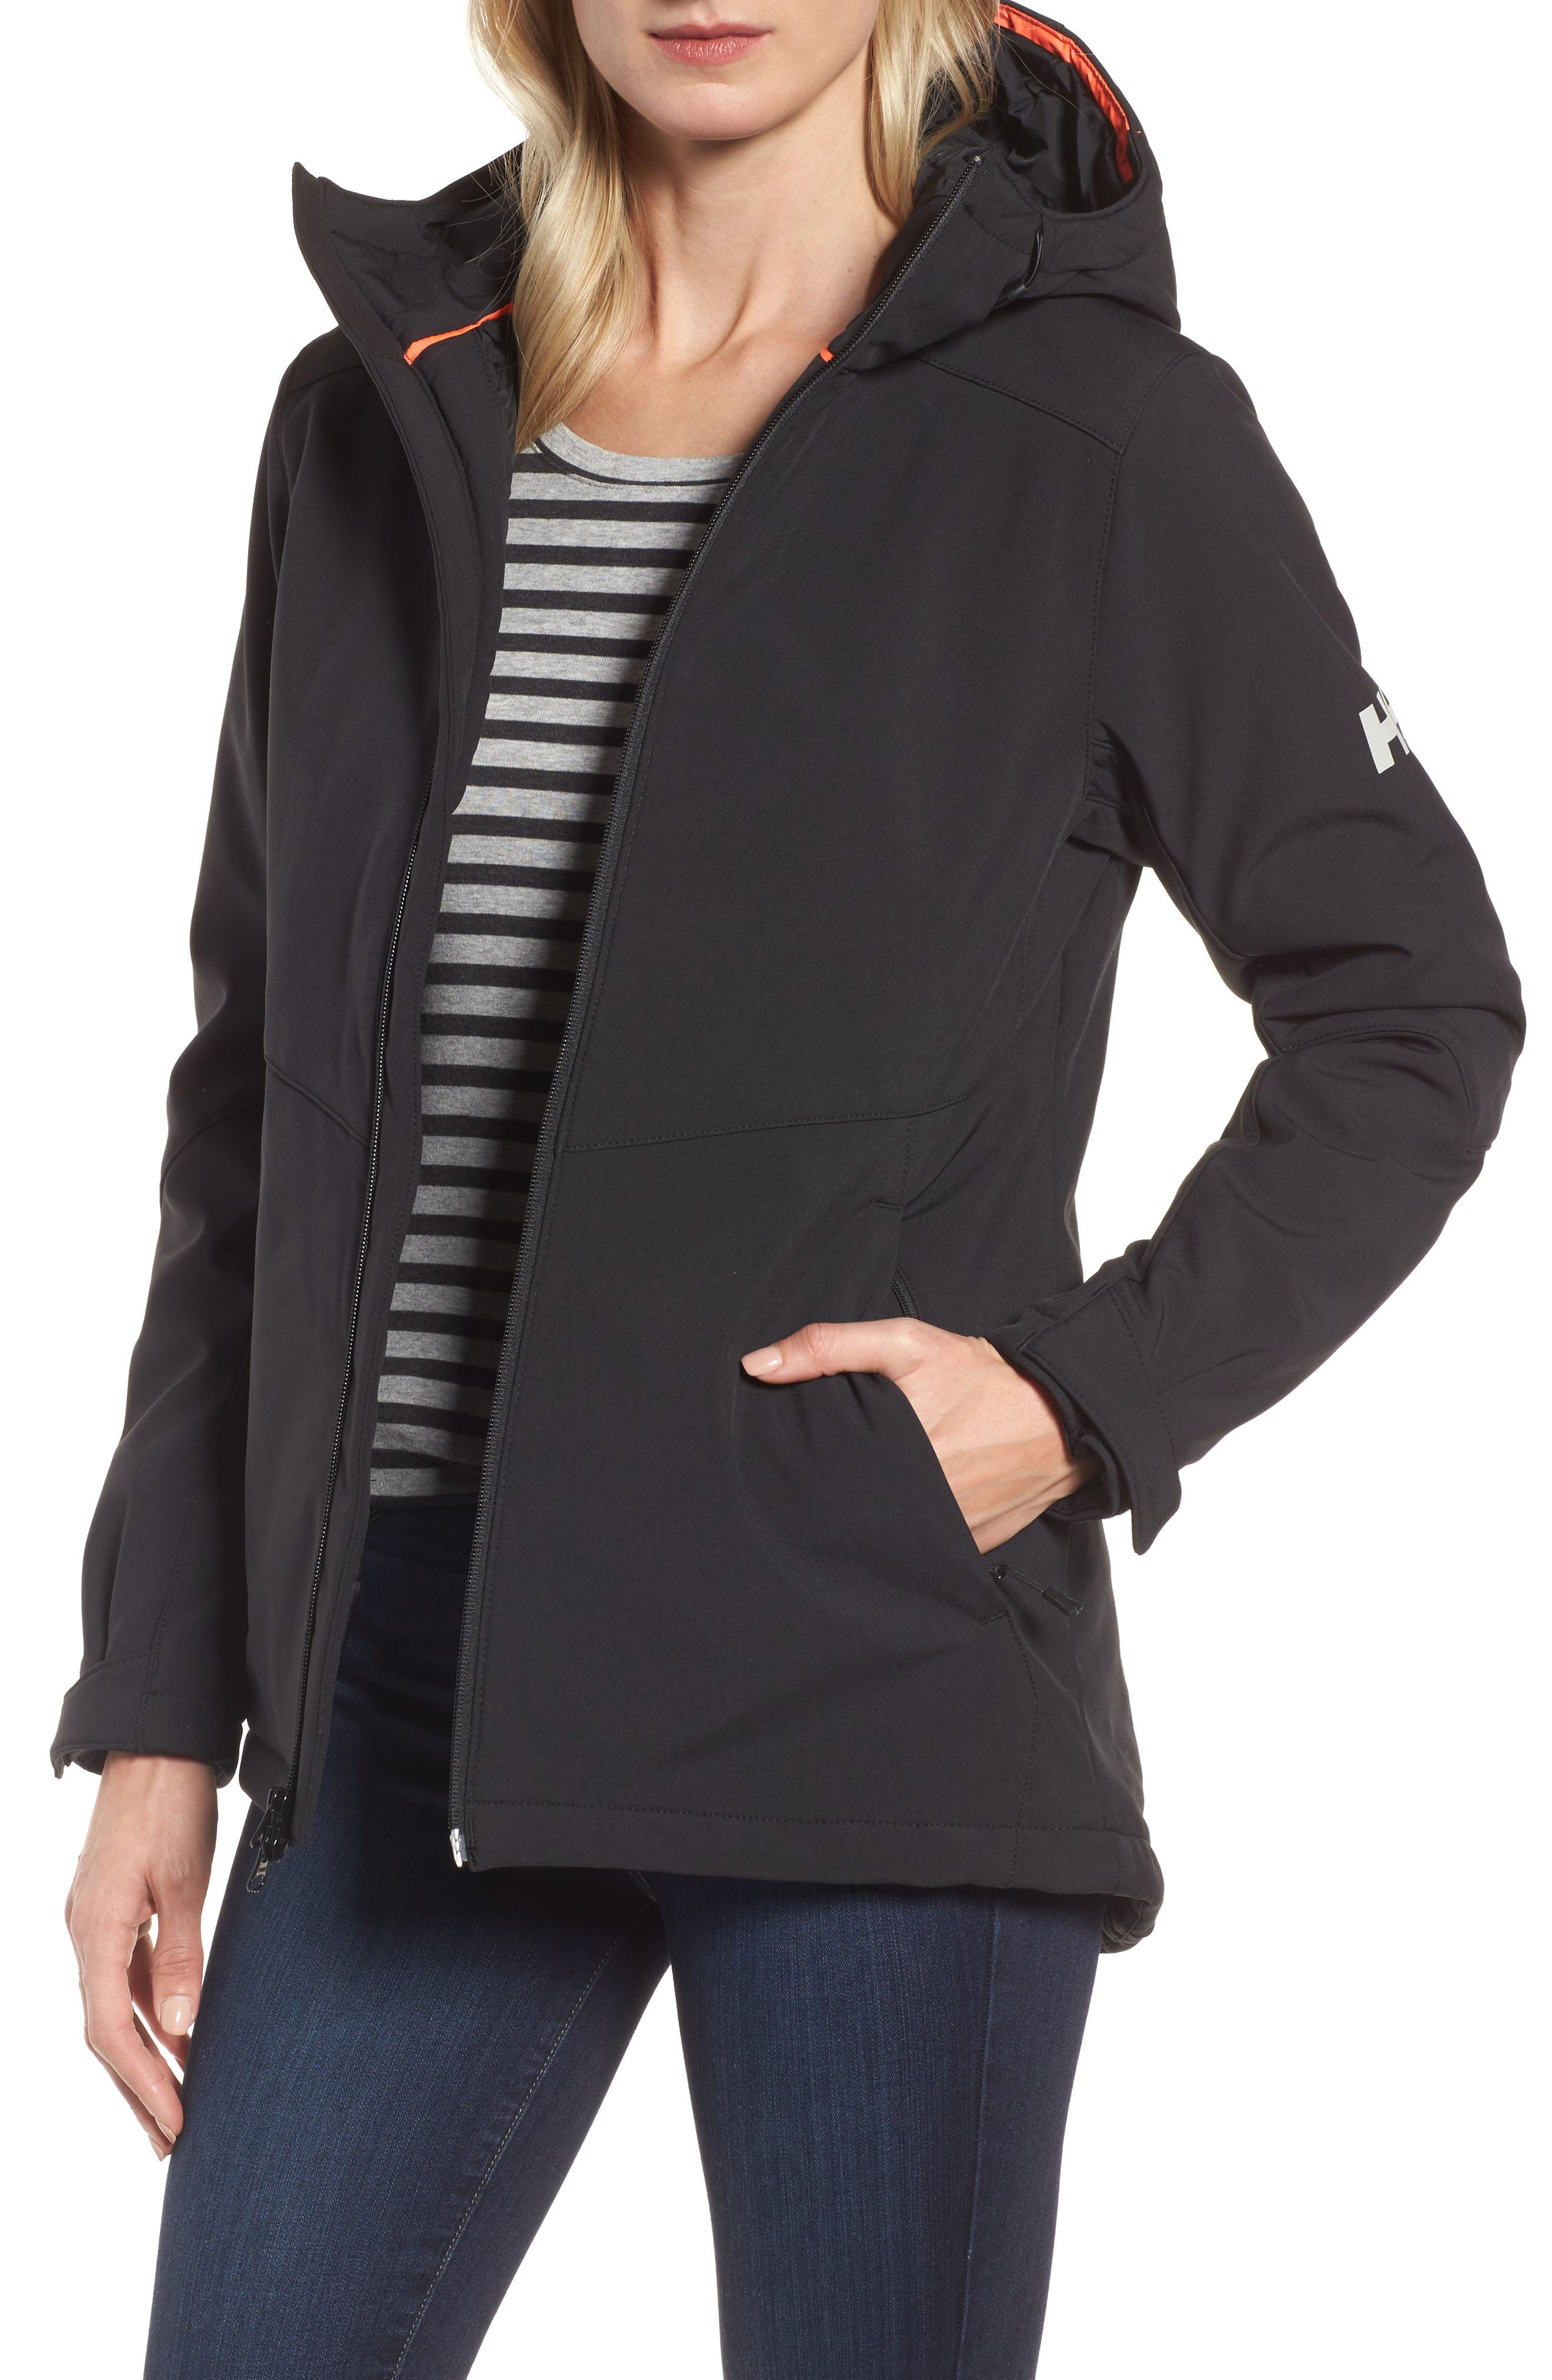 Lofn Hooded Insulated Soft Shell Jacket,                         Main,                         color, Black